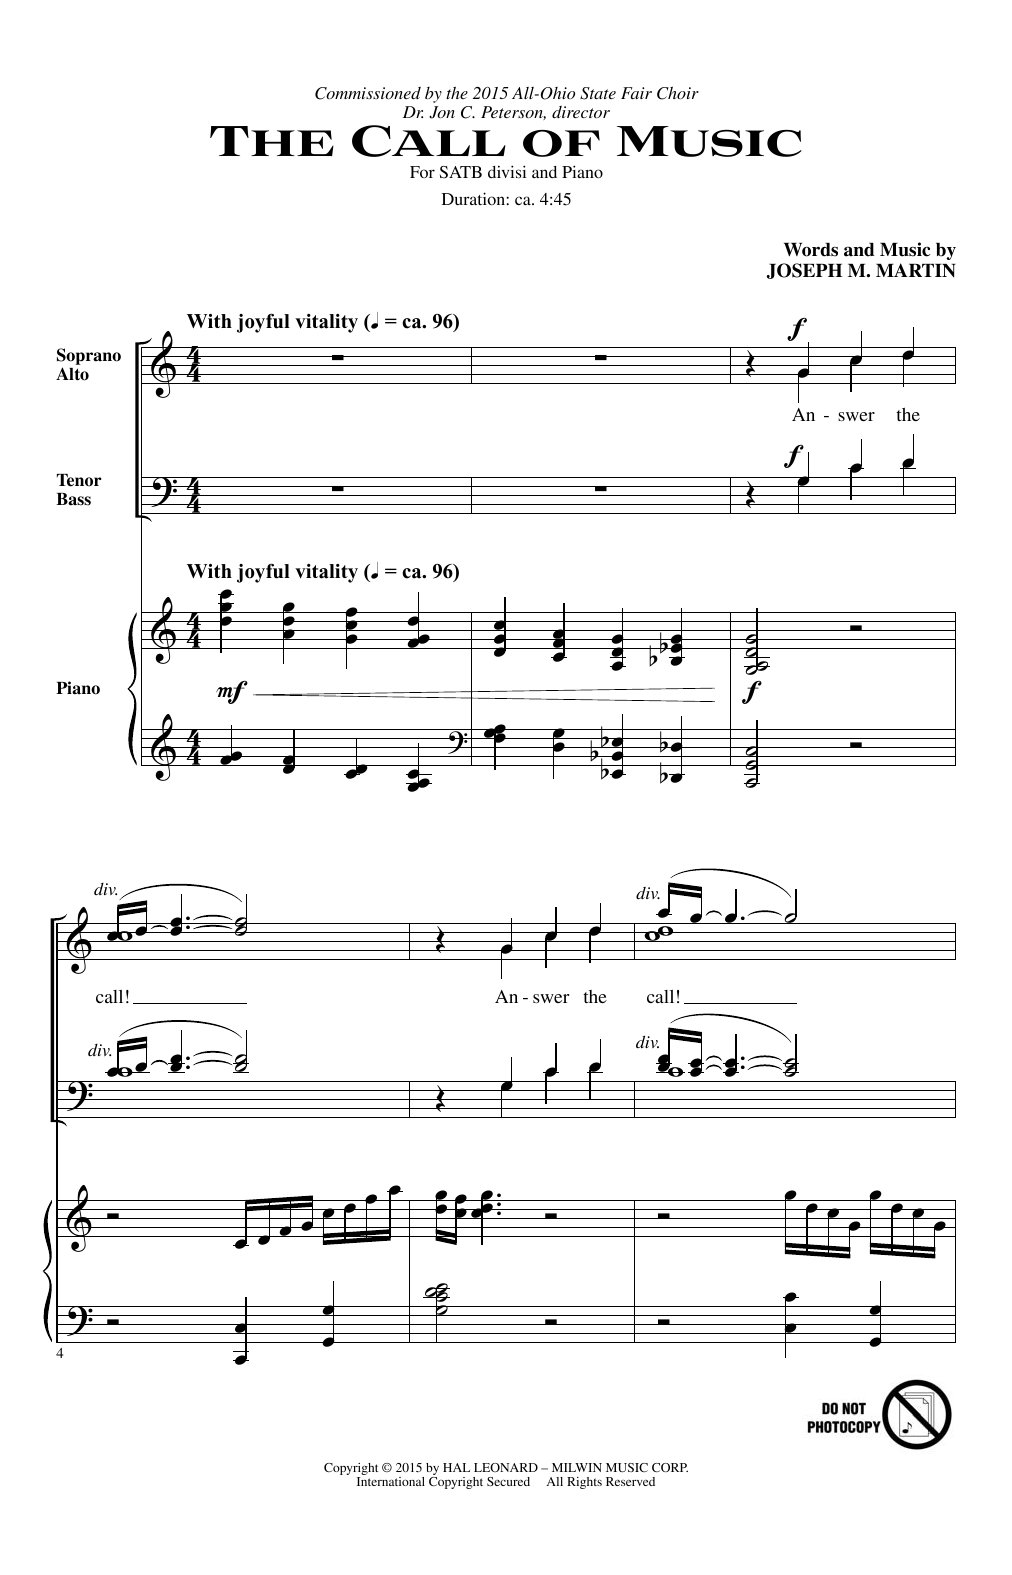 Joseph M. Martin The Call Of Music sheet music notes and chords. Download Printable PDF.